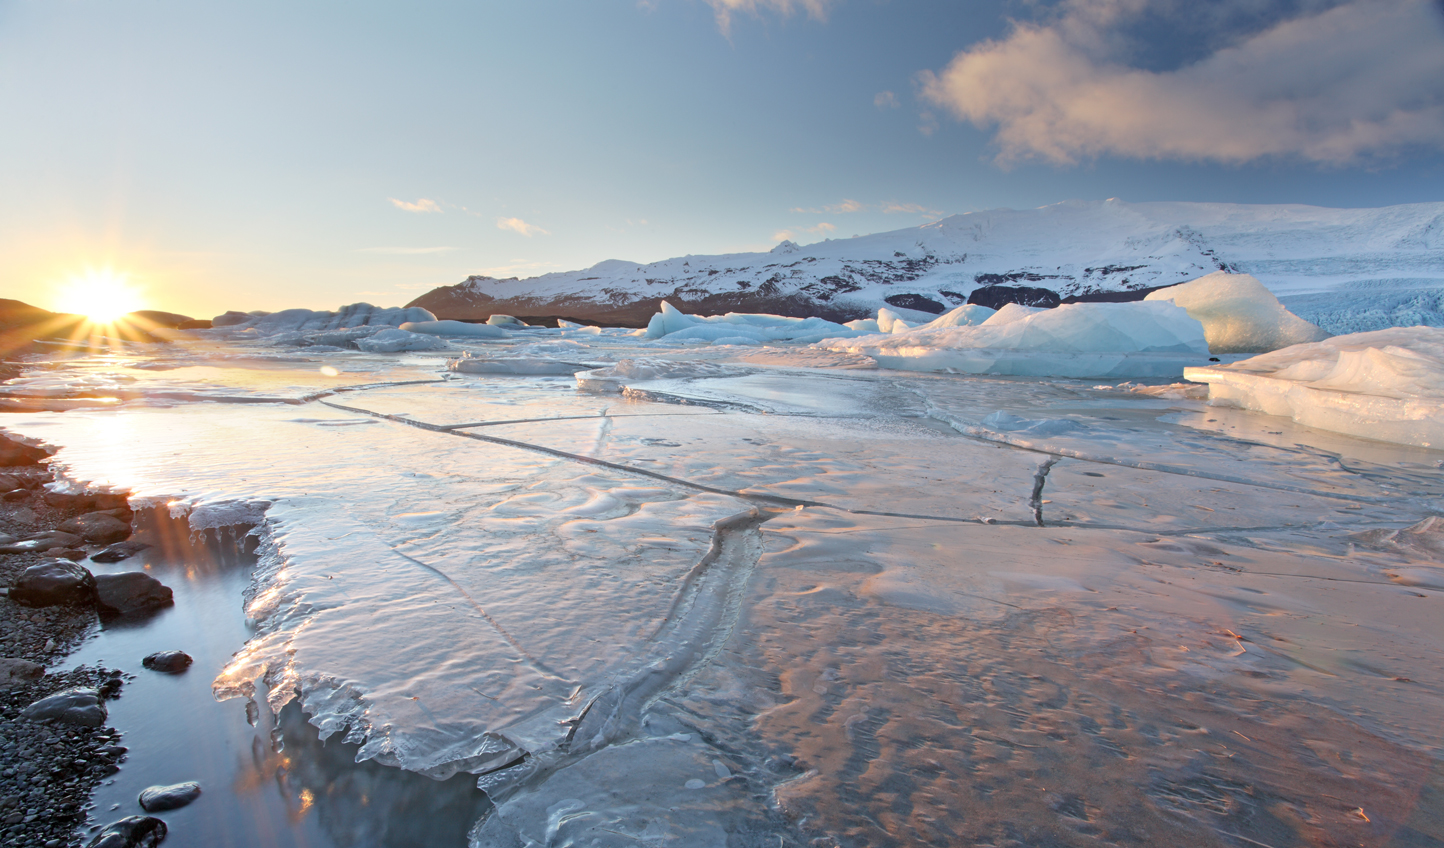 Discover frozen landscapes and geothermal wonder